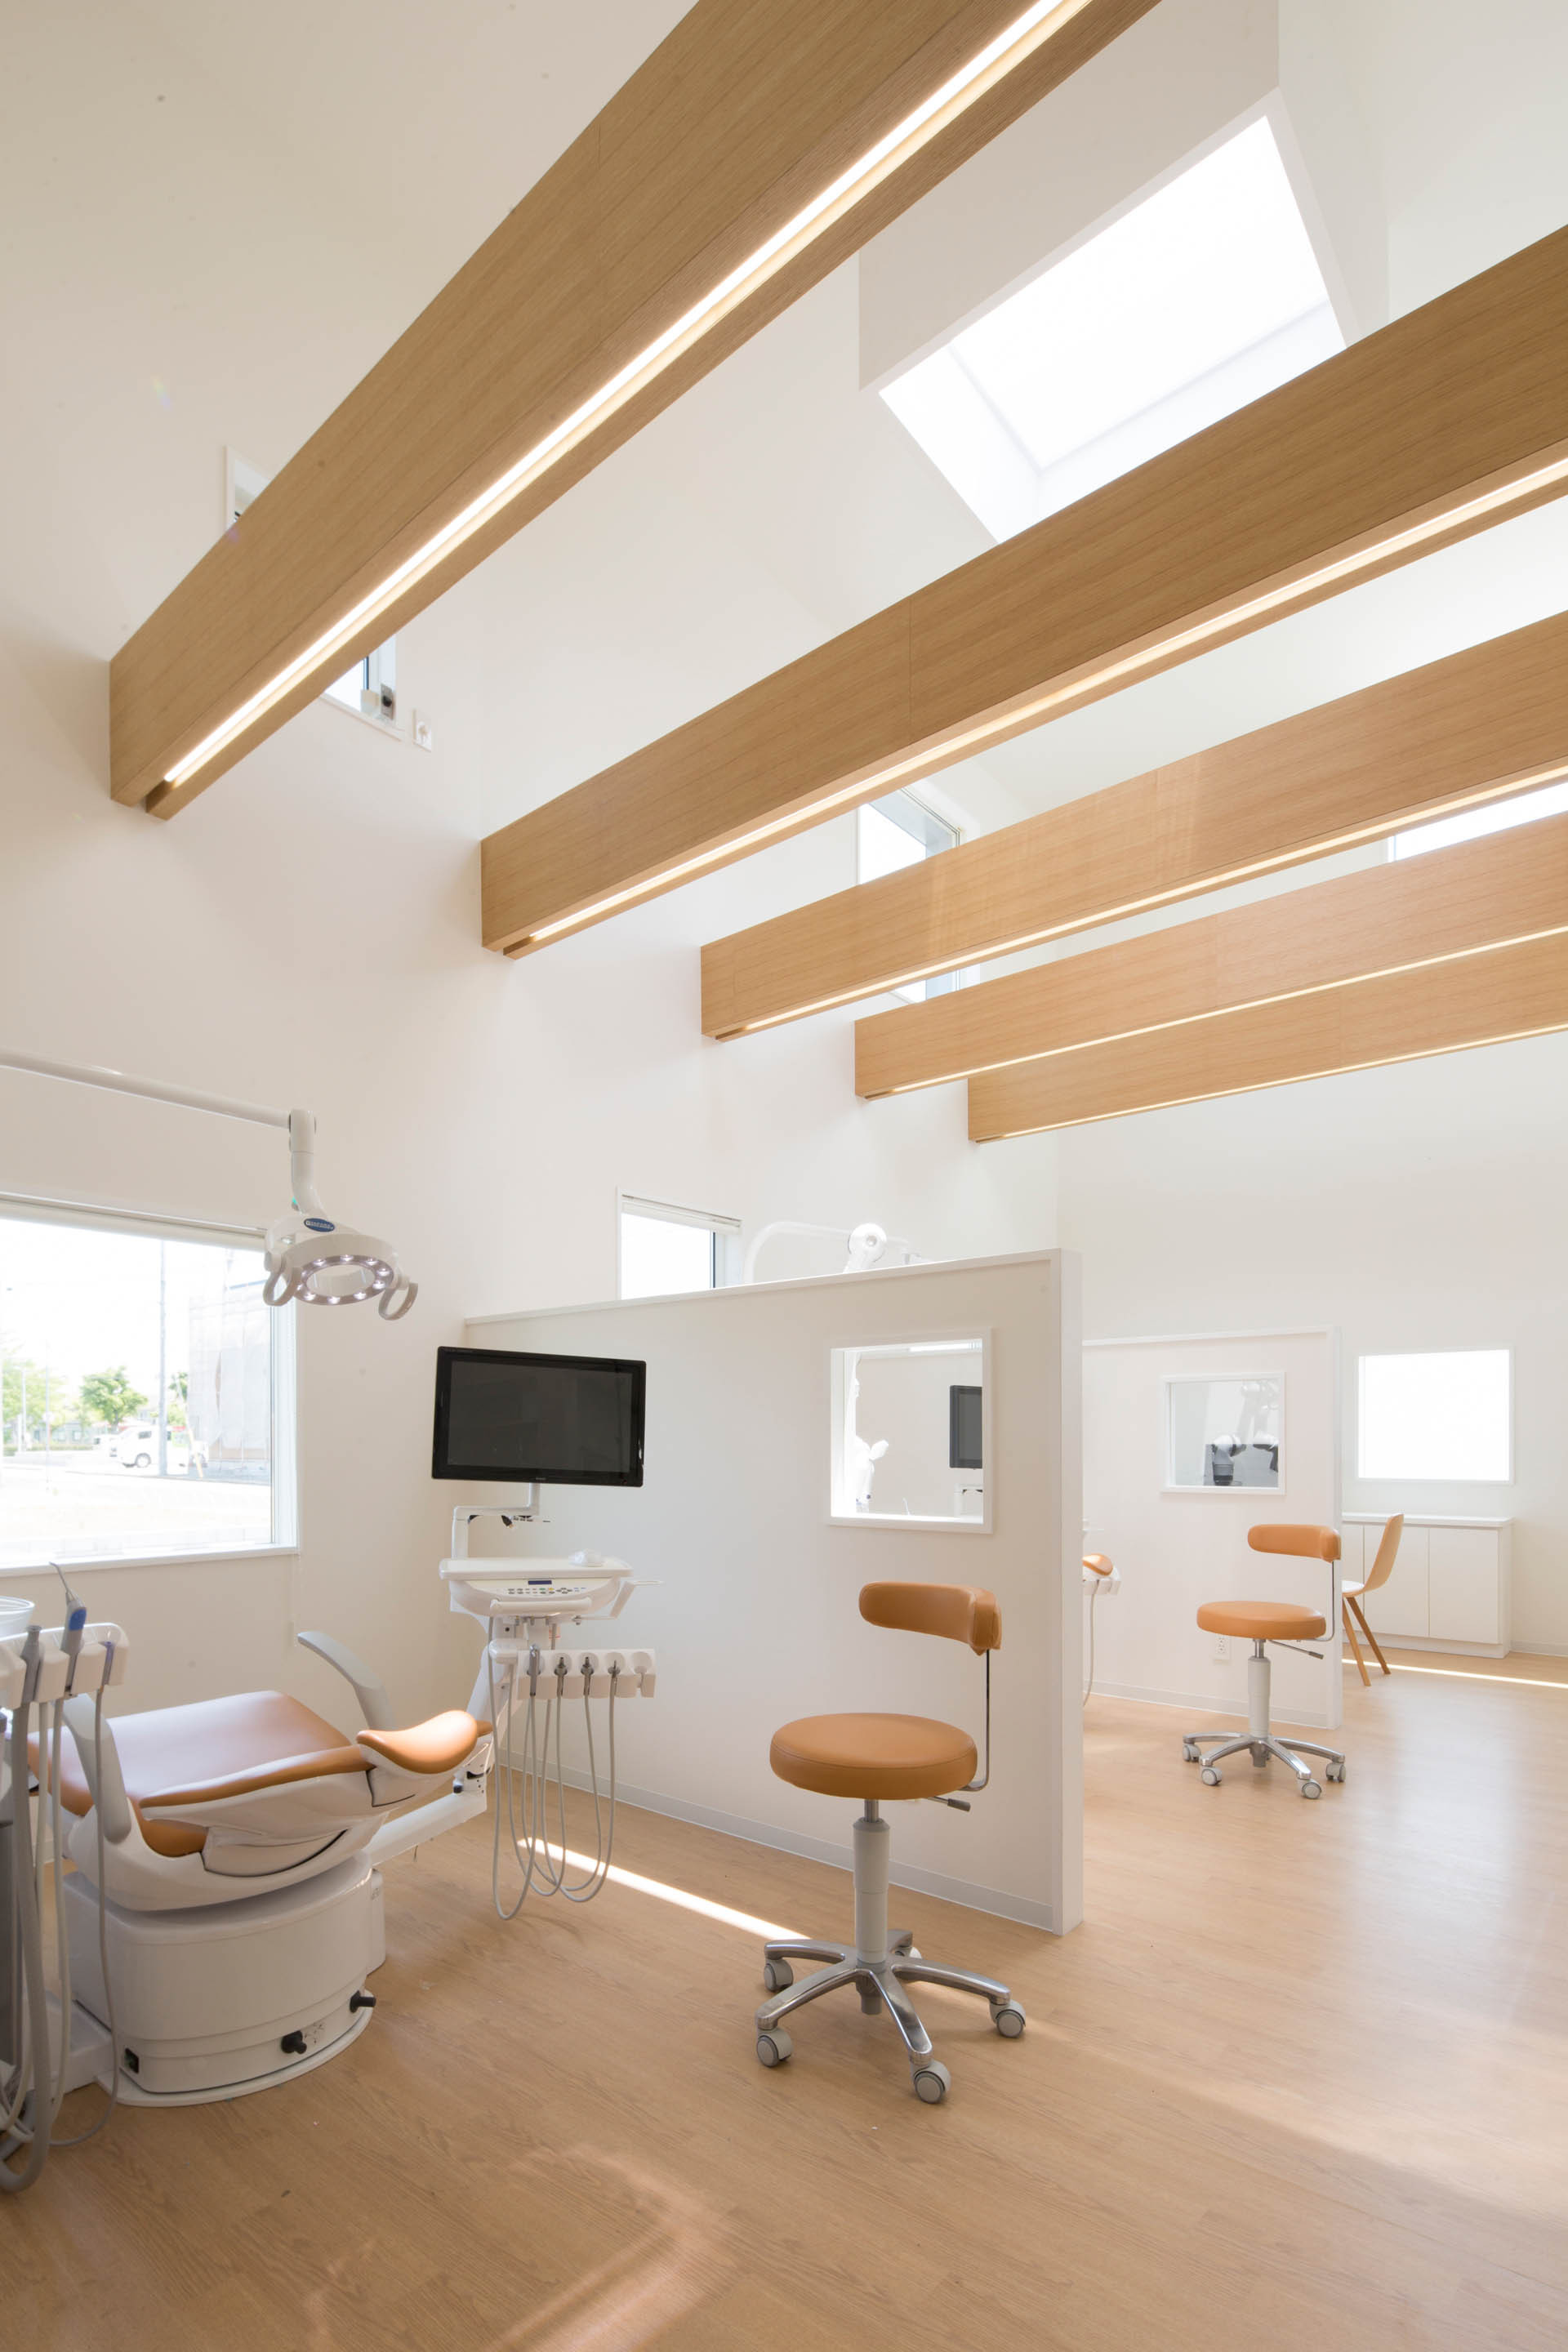 yokoi dental clinic iks design msd office archdaily